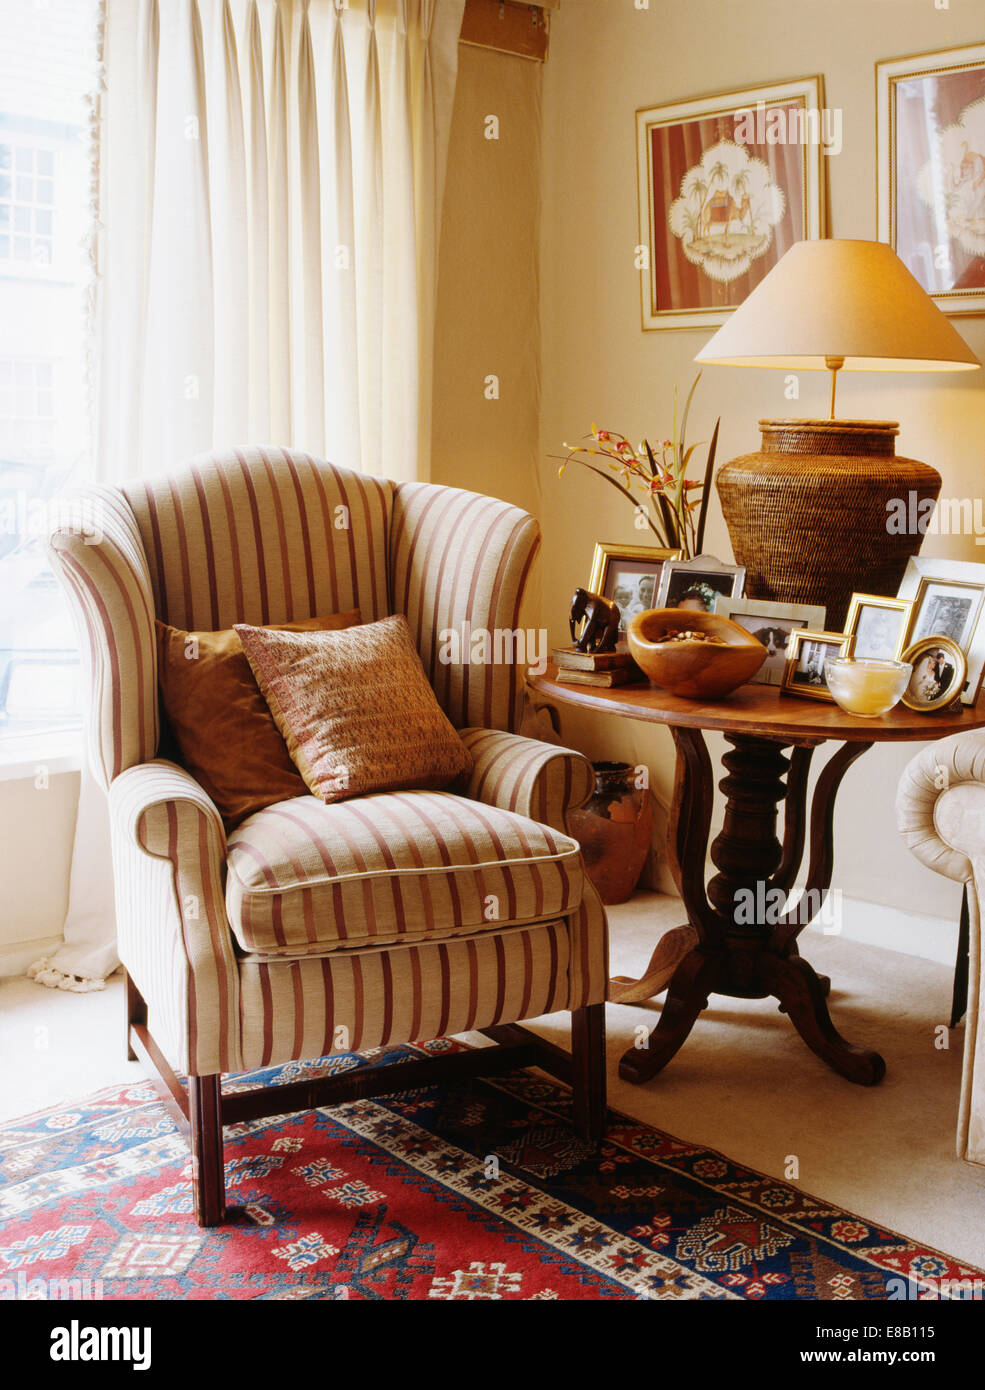 Beige Striped Wing Chair Beside Antique Circular Table With Lighted Lamp  And Group Of Framed Photographs